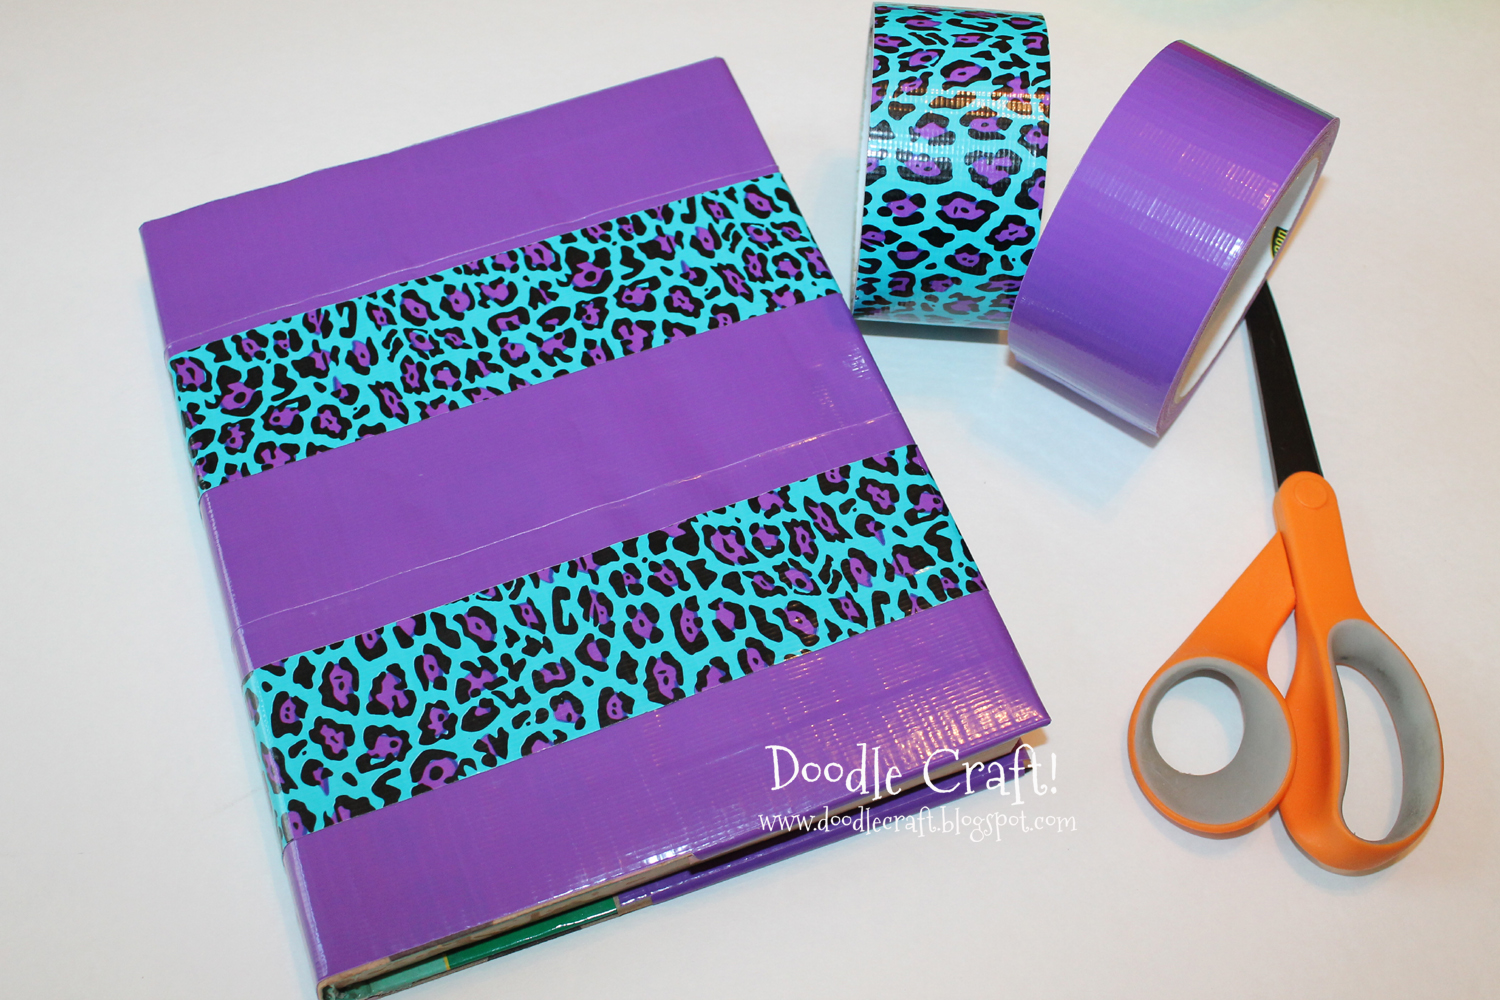 Book Cover Designs For School : Doodlecraft how to cover a textbook with duct tape